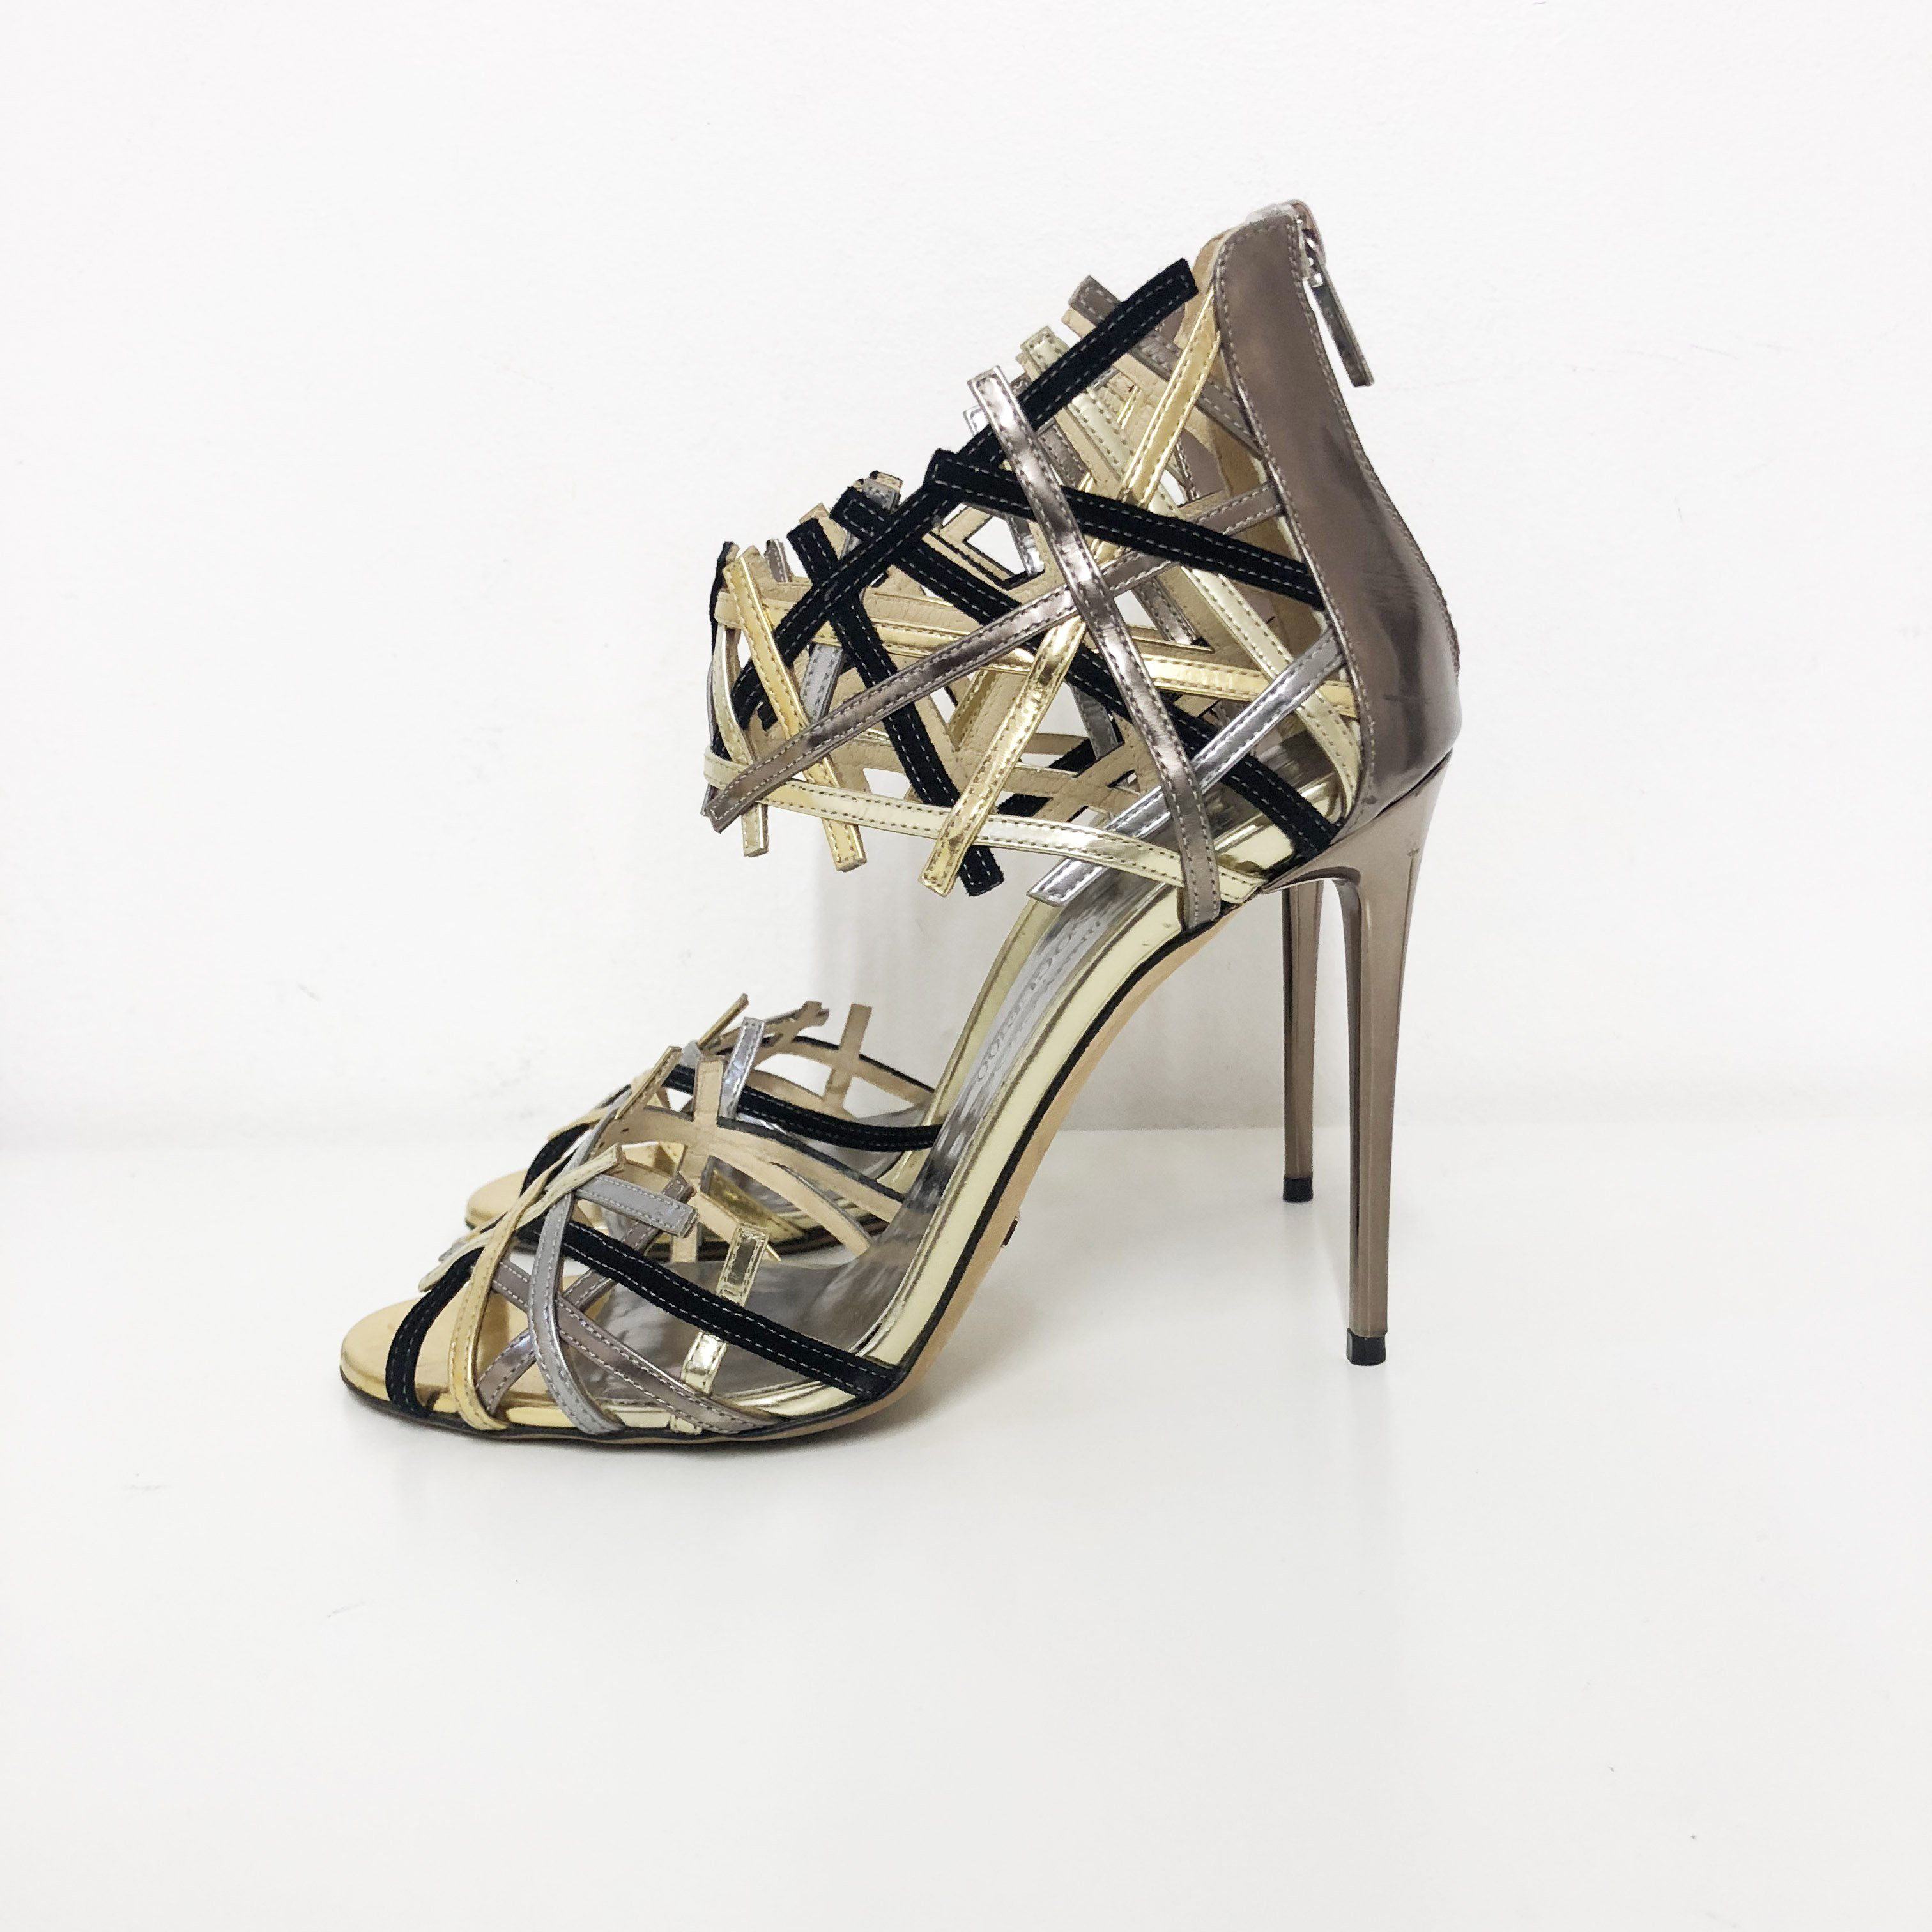 e5237b2b1f1 Jimmy Choo Limited Edition Vogue 100 Criss Cross Heels – Garderobe